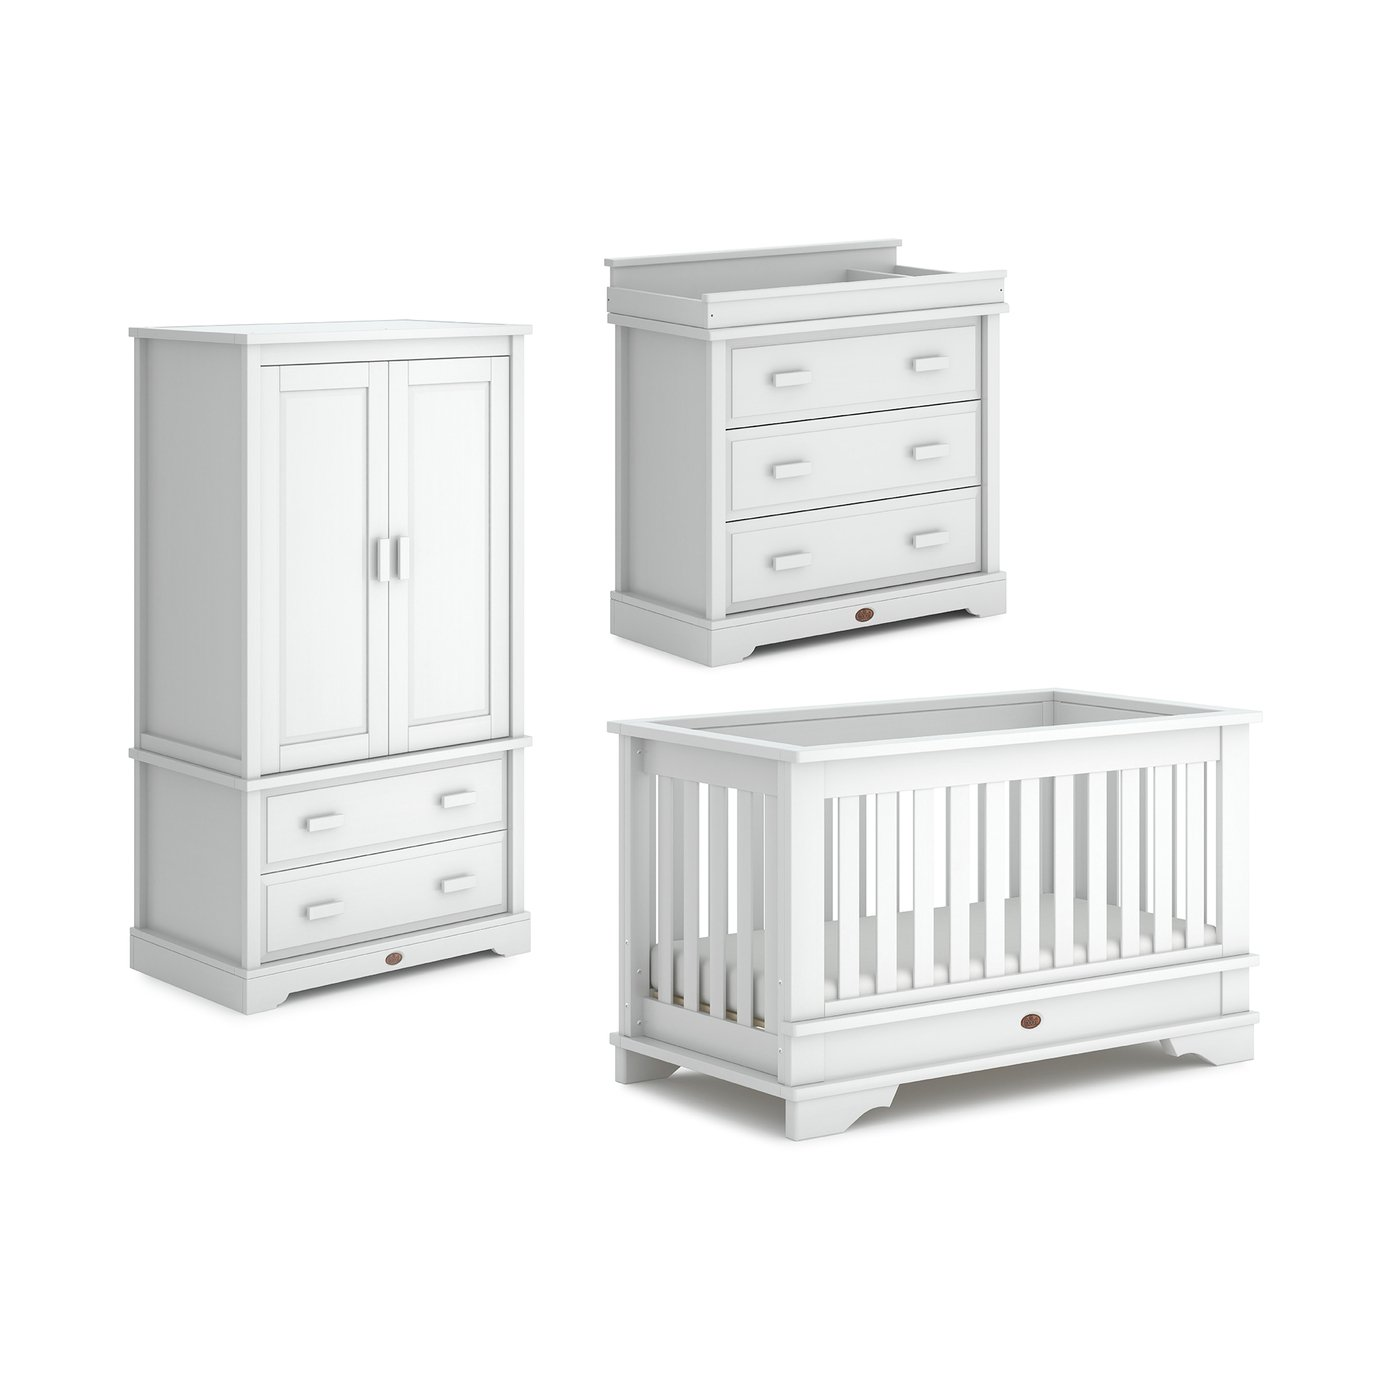 Boori Eton Convertible Plus 3 Piece Set - White